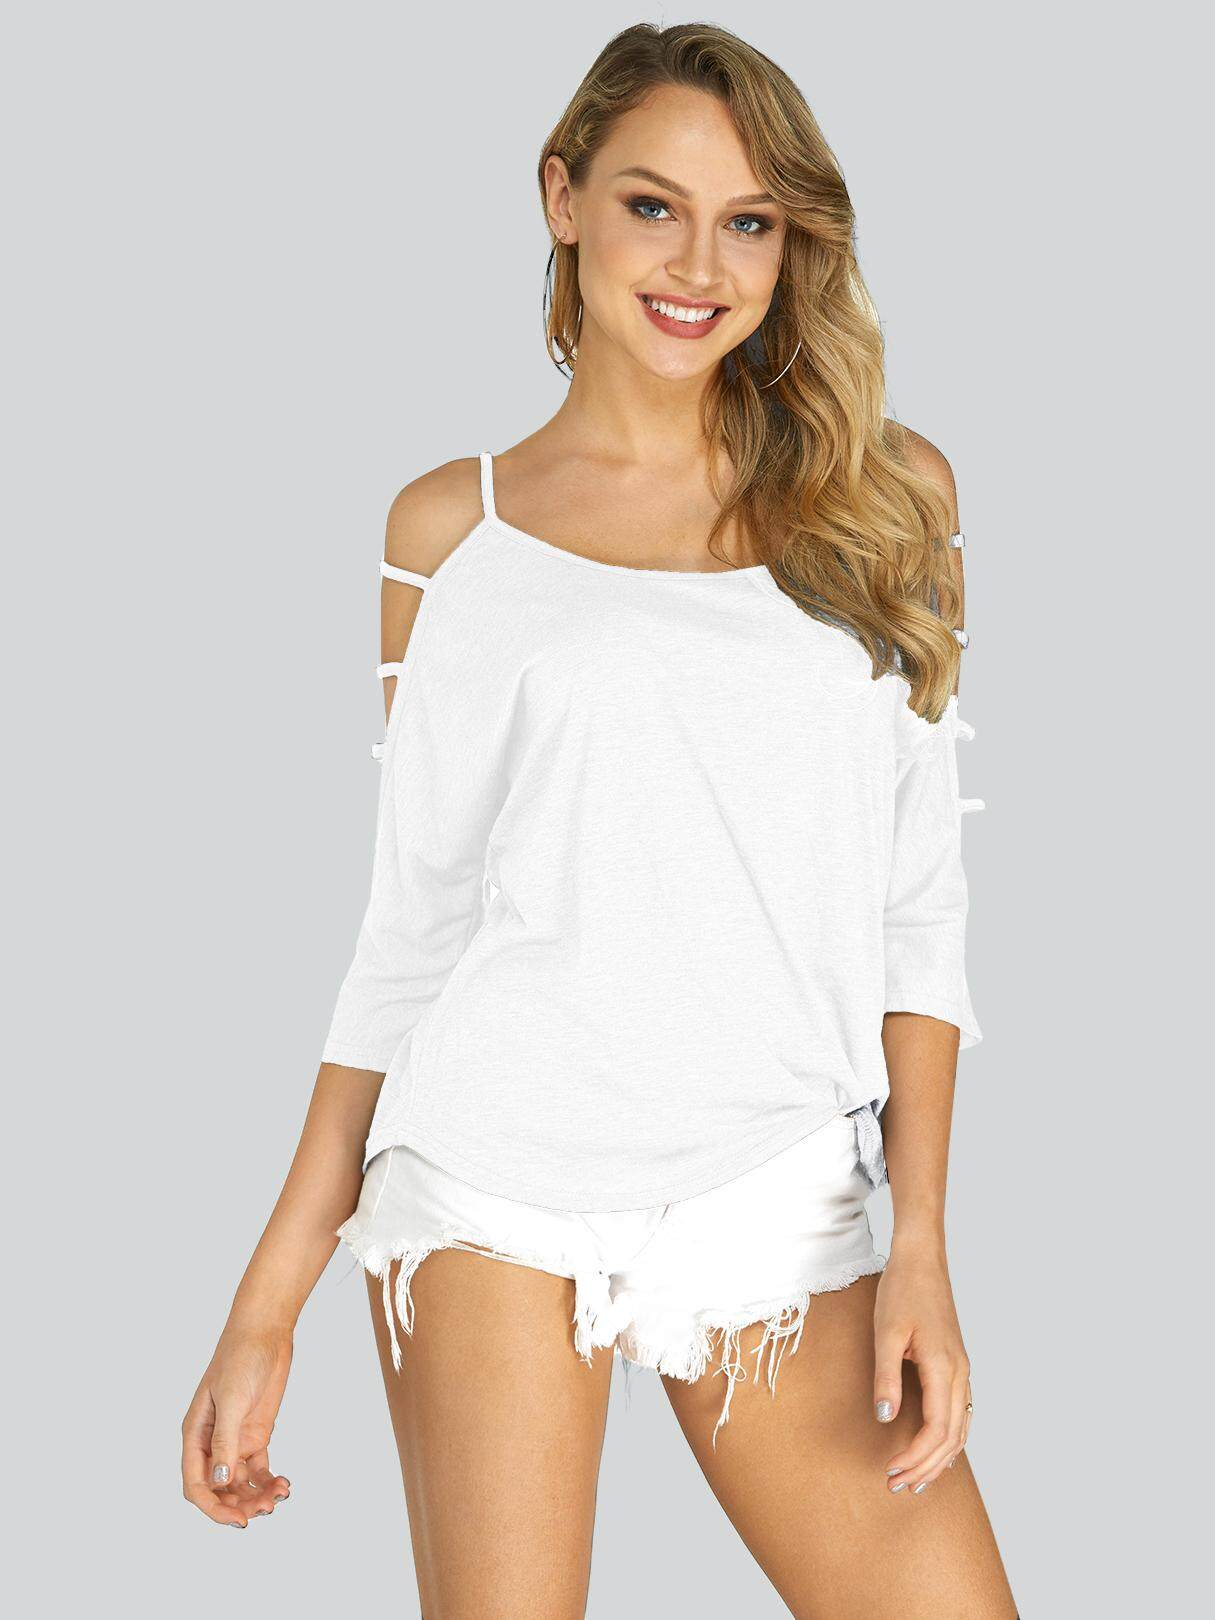 7ba6e1182b8 YOINS Spring Summer Women Ladies Sexy Hollow Cut Out Cold Shoulder 3 4  Sleeve T